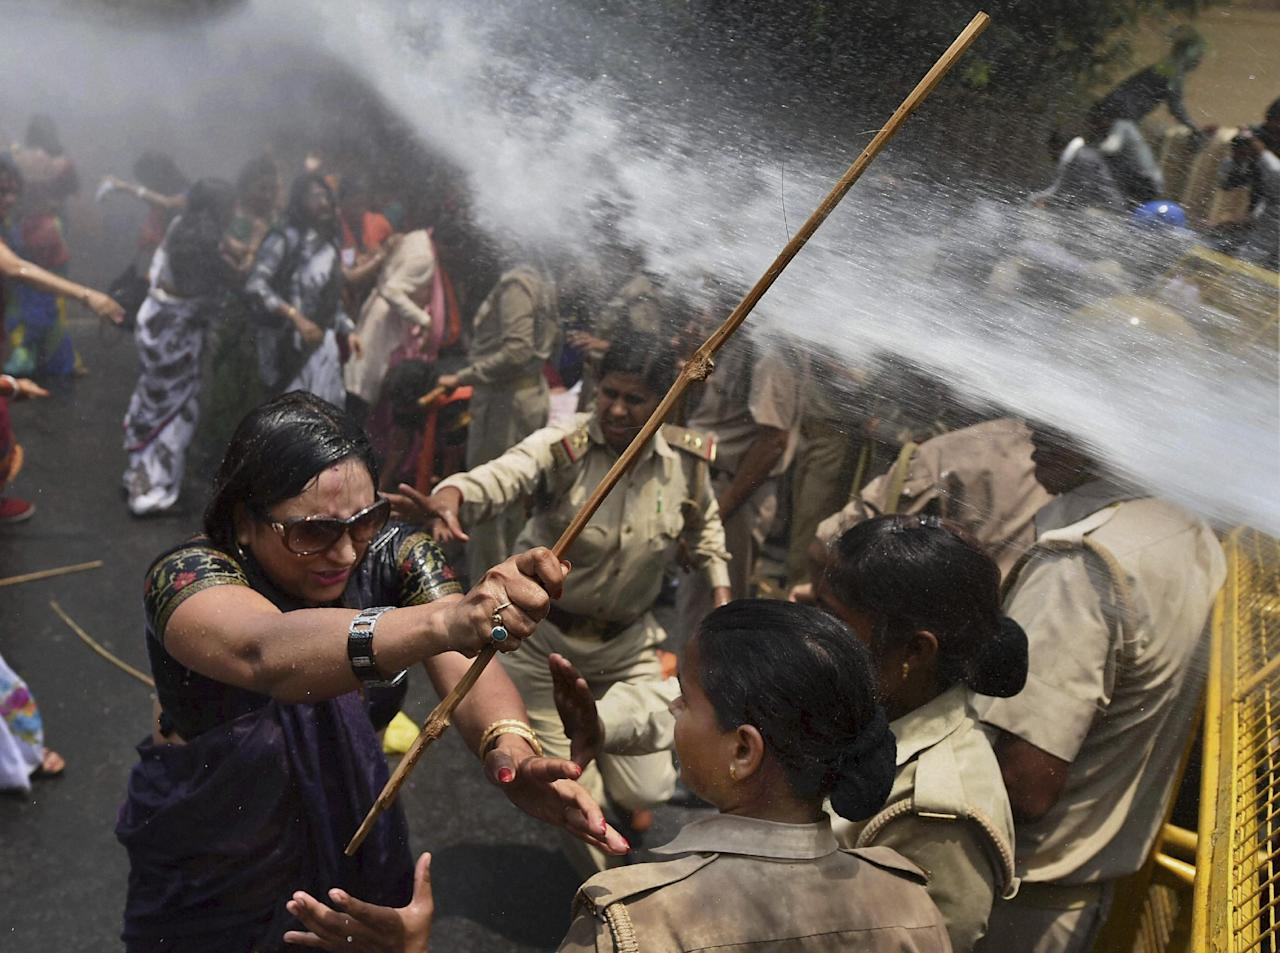 An Indian woman, left, one among the protestors demonstrating outside the office of Uttar Pradesh state chief minister Akhilesh Yadav, demanding that he crack down on an increasing number of rape and other attacks on women and girls, scuffles with police in Lucknow, India, Monday, June 2, 2014. Police used water cannons to disperse hundreds of women who were protesting Monday against a rise in violence against women in the northern Indian state where two teenagers were gang-raped last week and later found hanging from a tree. (AP Photo)